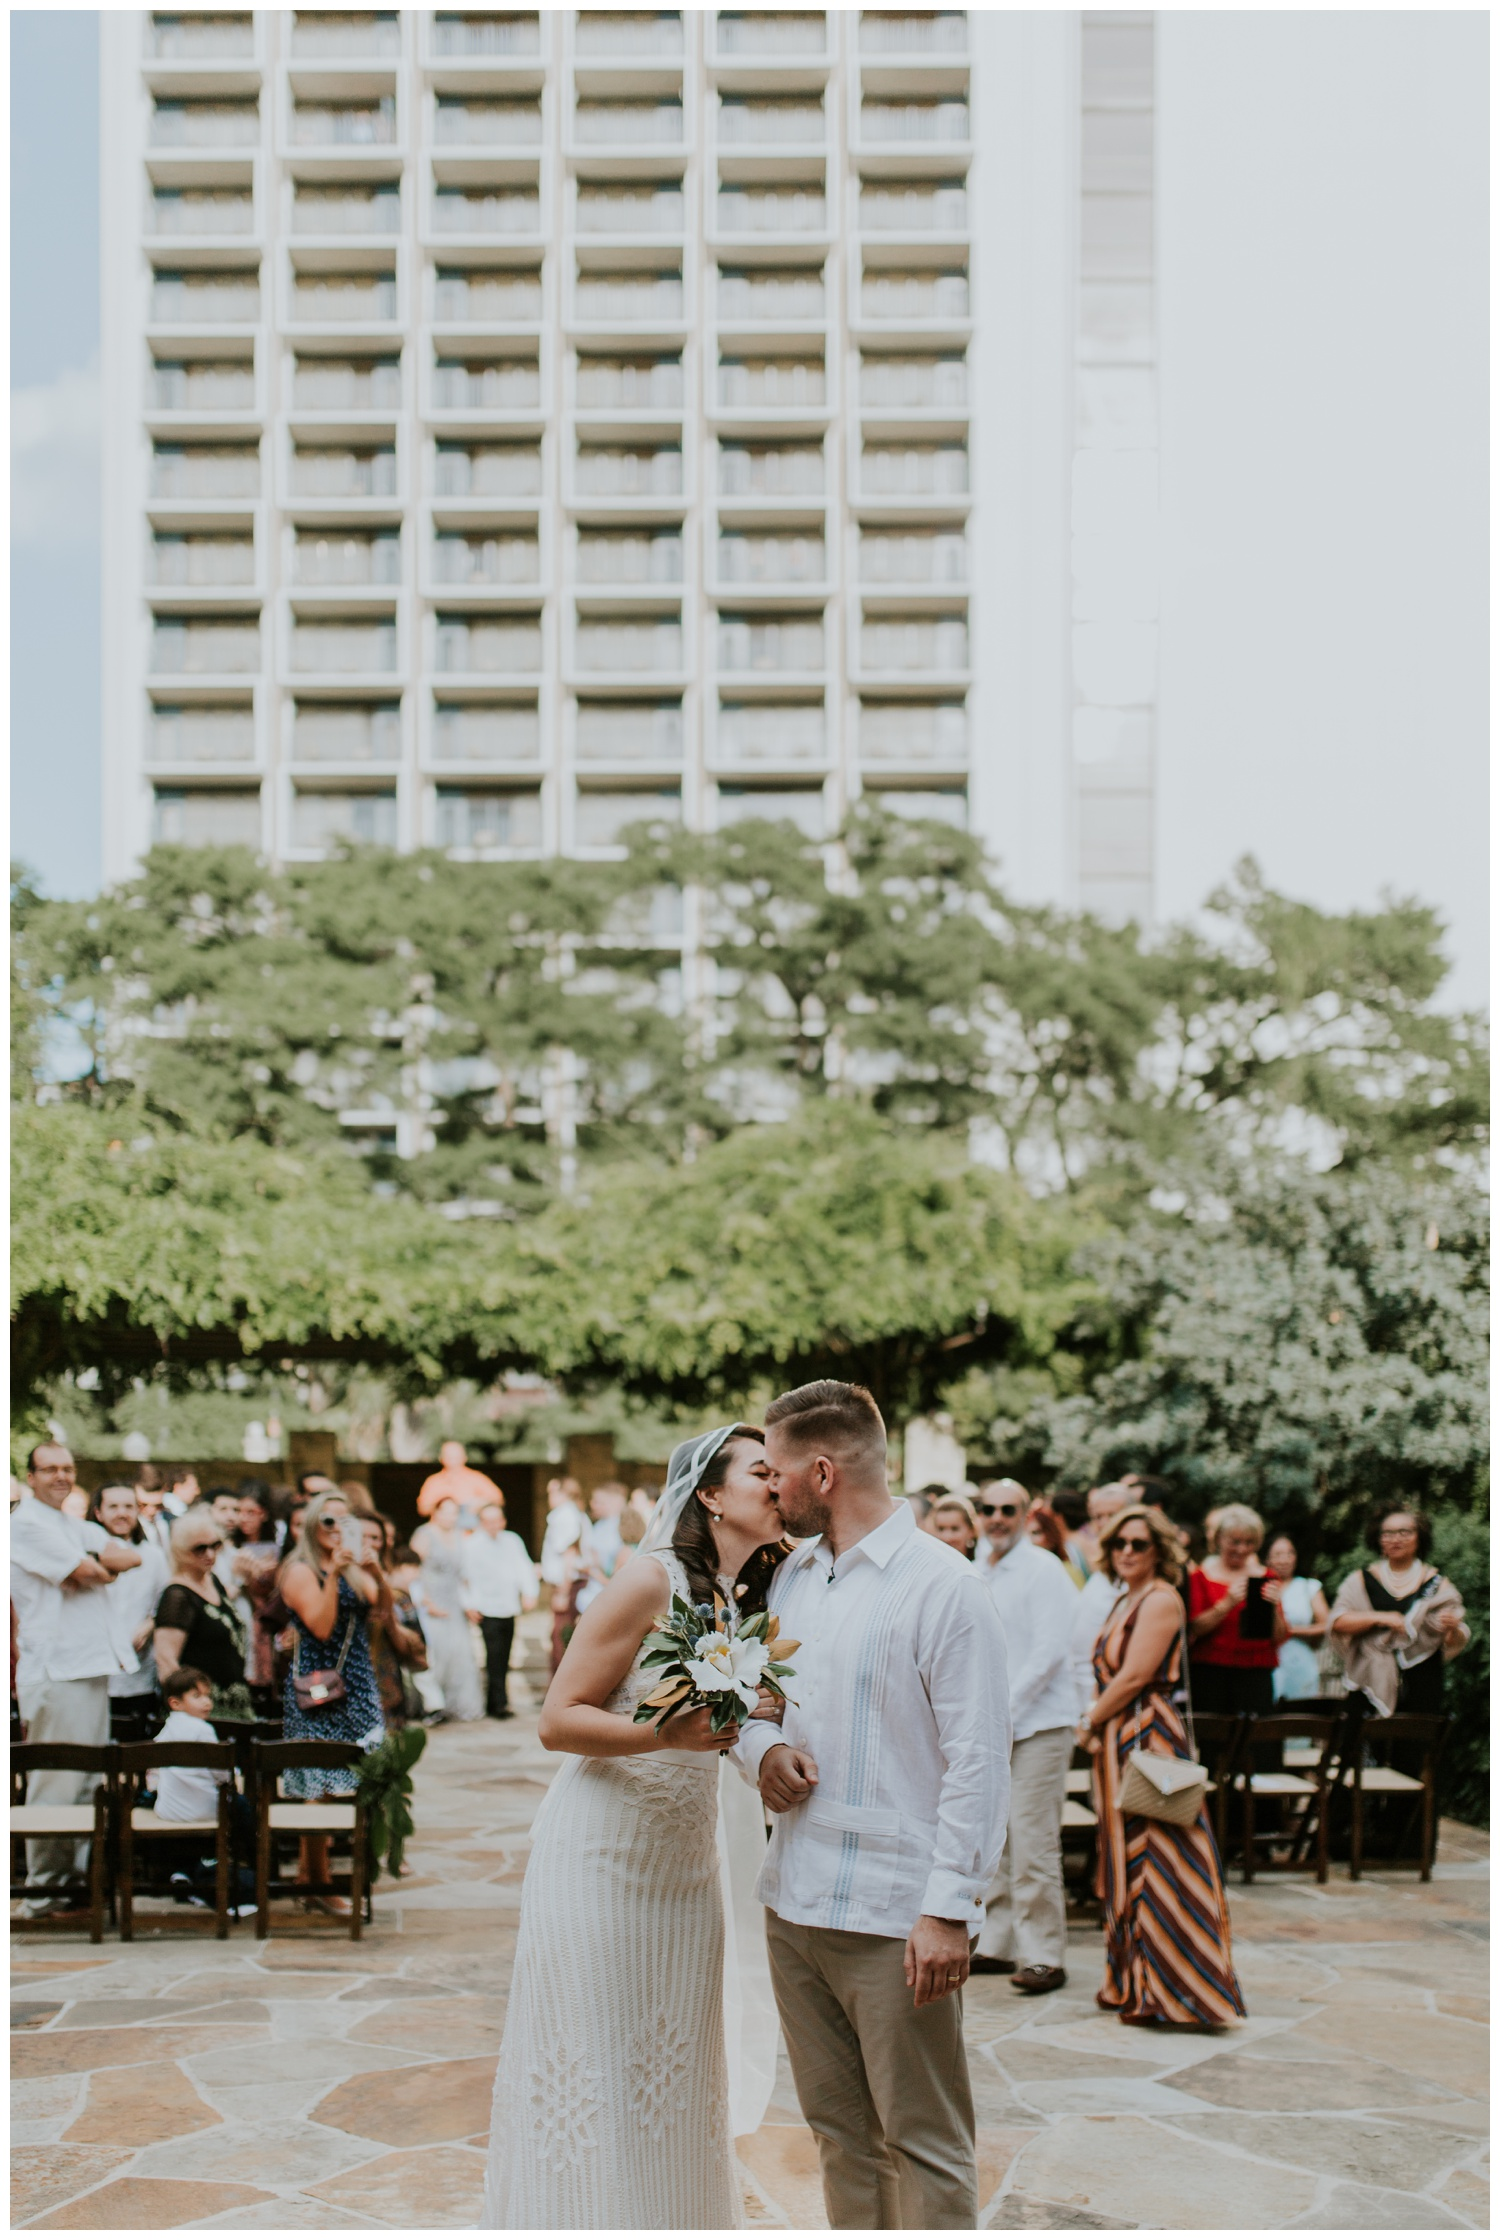 Ana + Sean || Jack Guenther Pavilion at the Briscoe Wedding San Antonio, Texas (Joshua and Parisa – Contista Productions)_0129.jpg